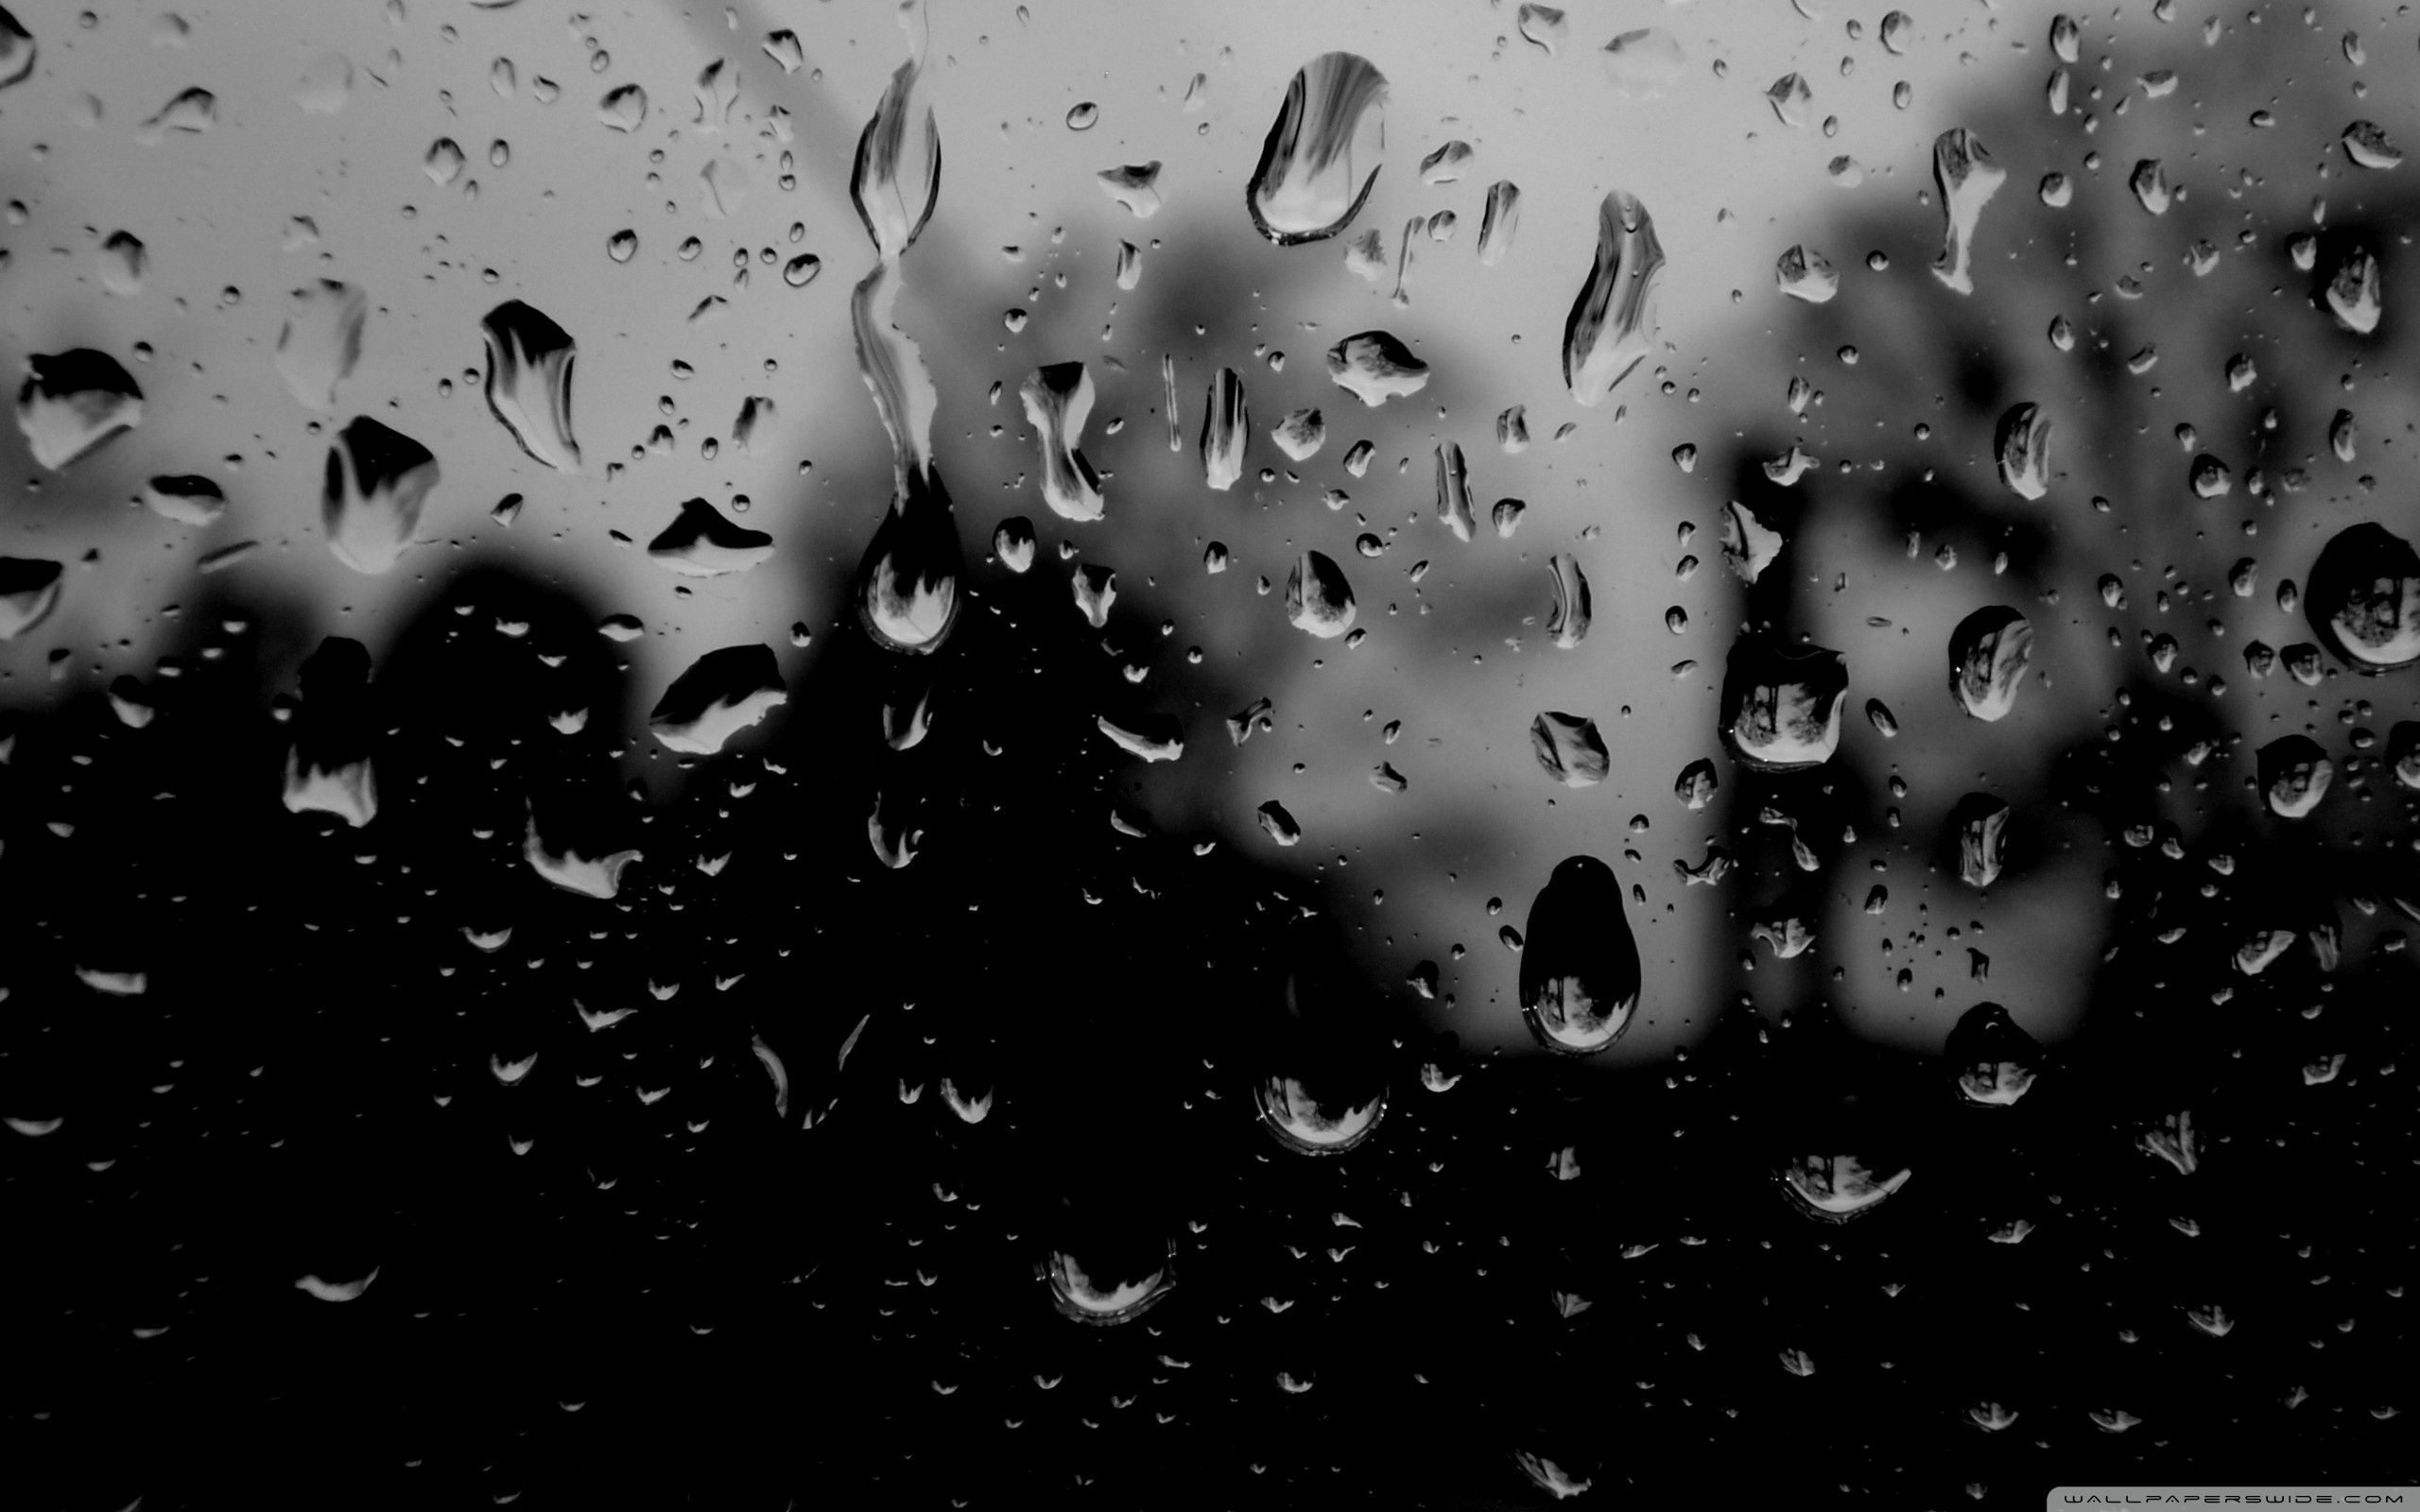 Dark Rainy Day Hd Desktop Wallpaper High Definition Fullscreen Laptop Wallpaper Desktop Wallpapers Desktop Wallpaper Fall Rainy Day Wallpaper